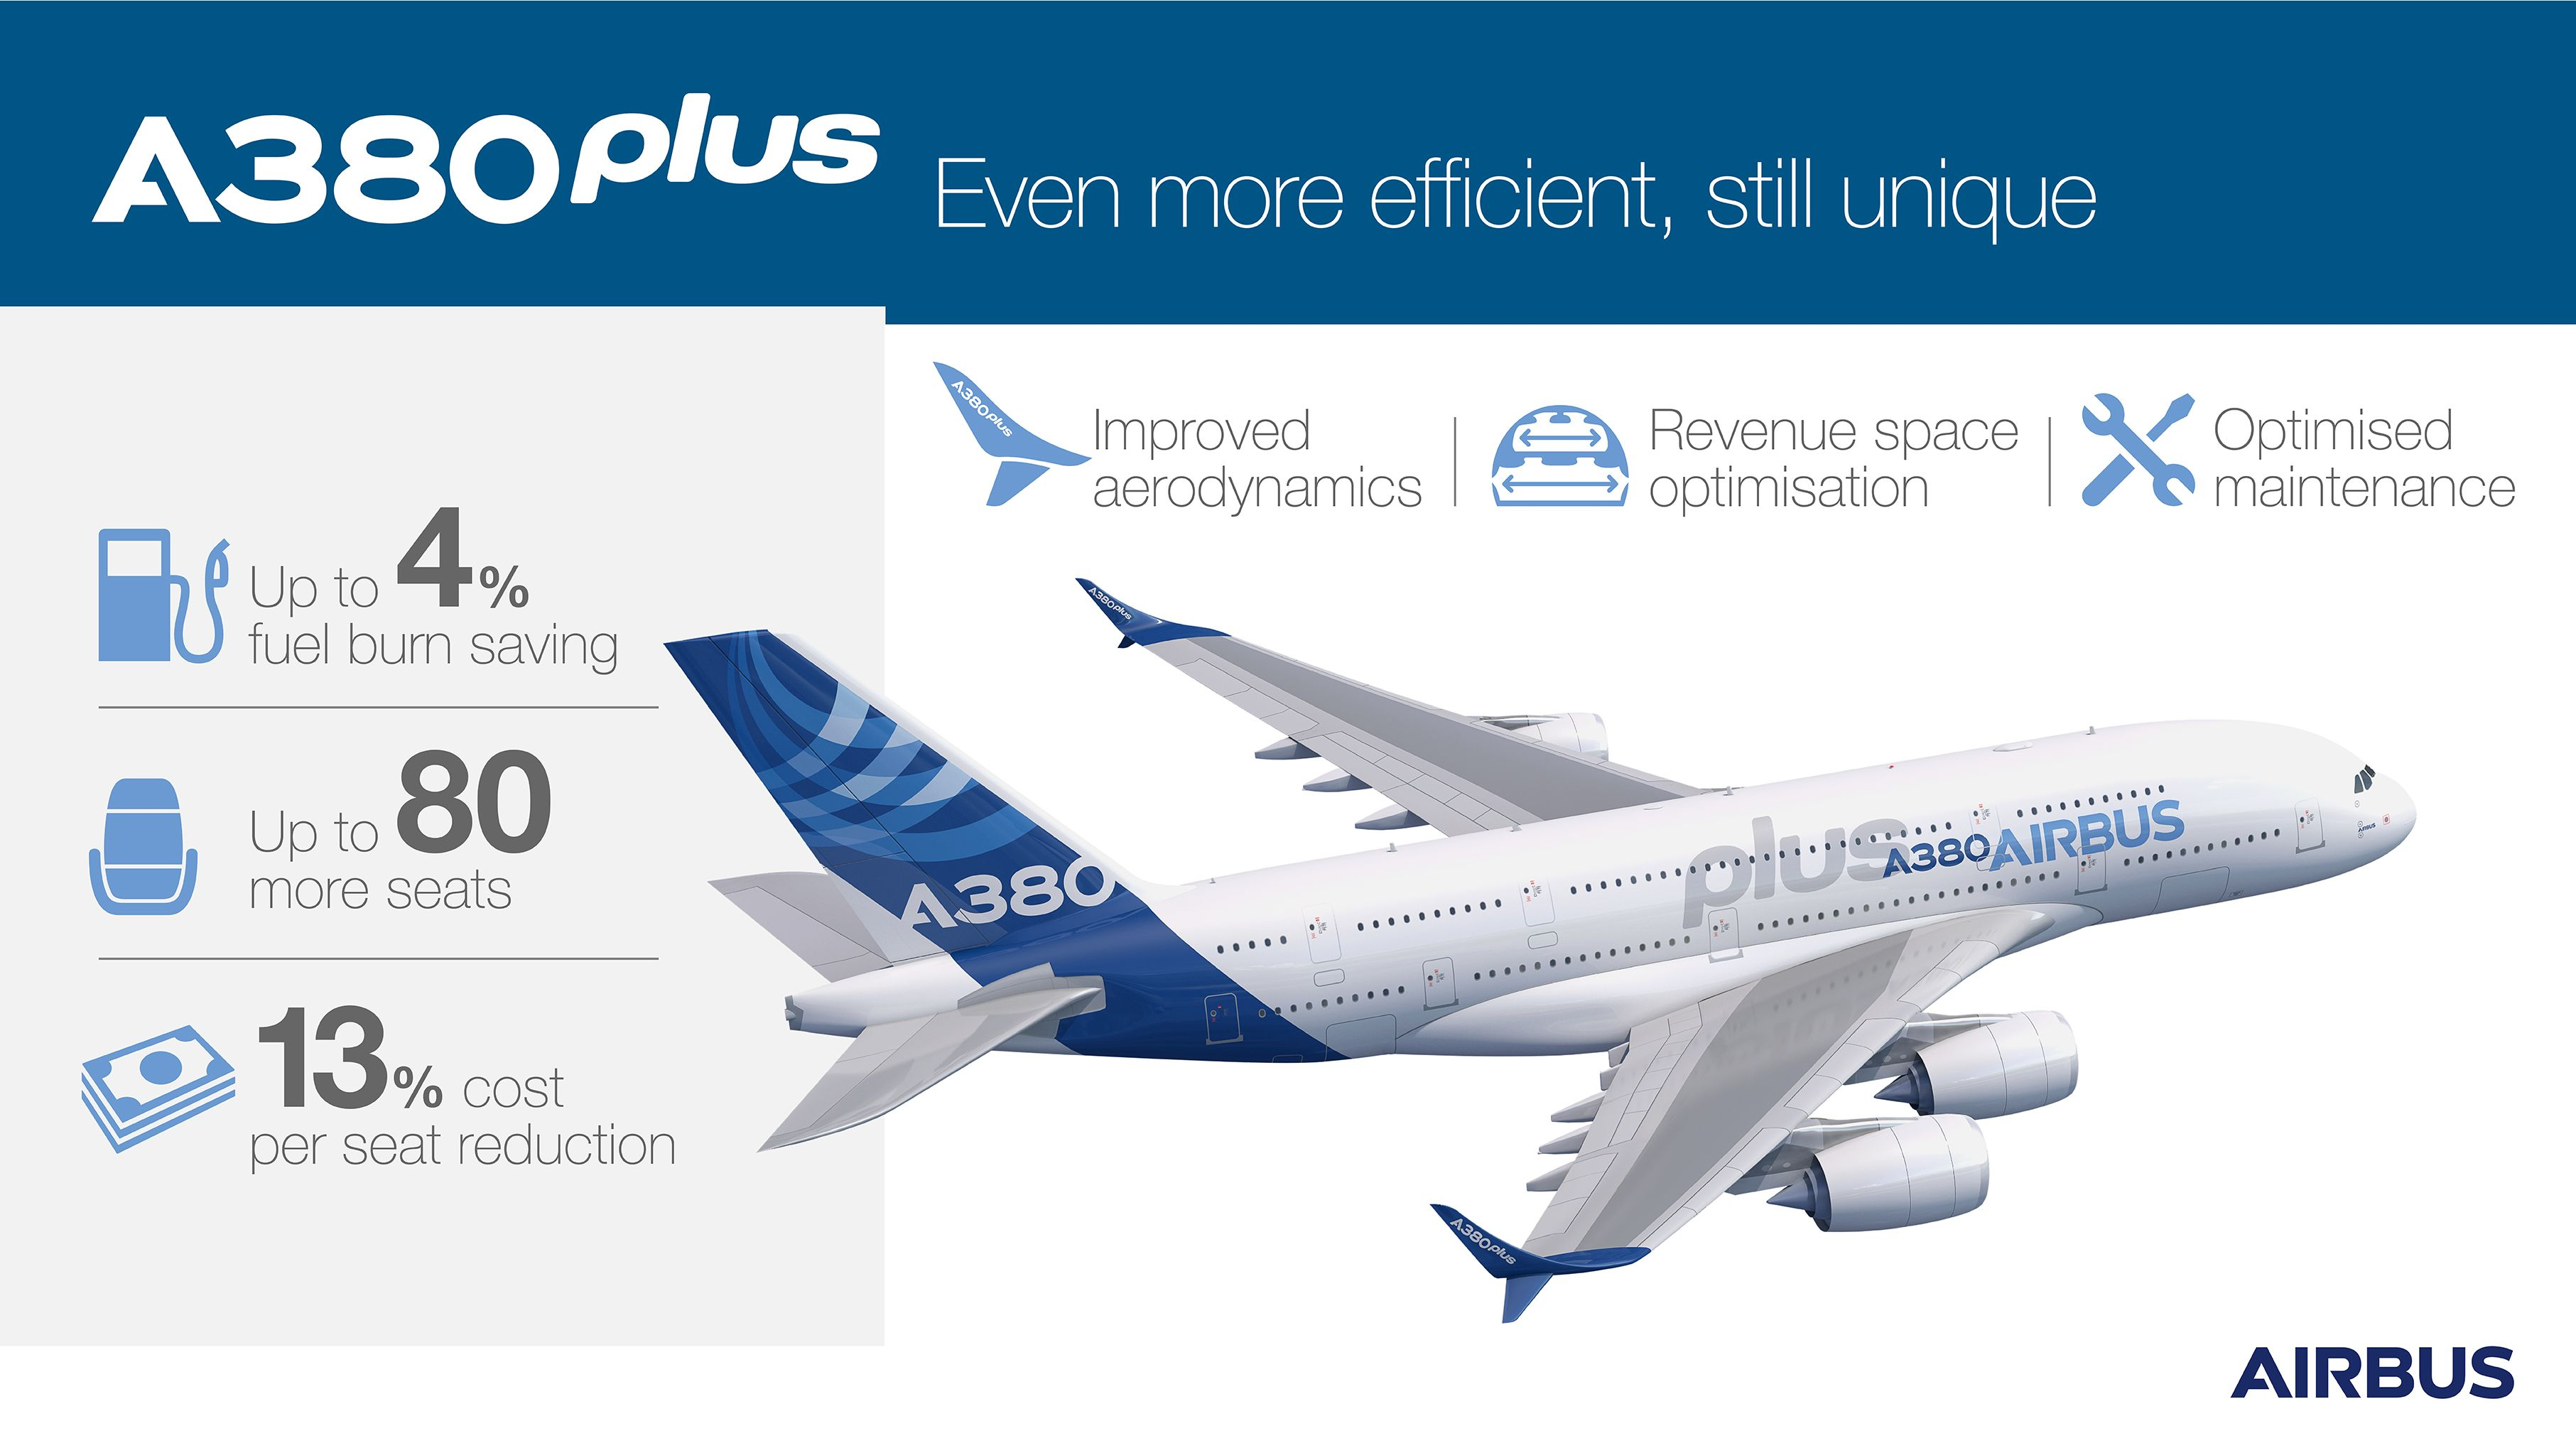 3_1497843064131_A380plus-Infographic-June-2017.jpg